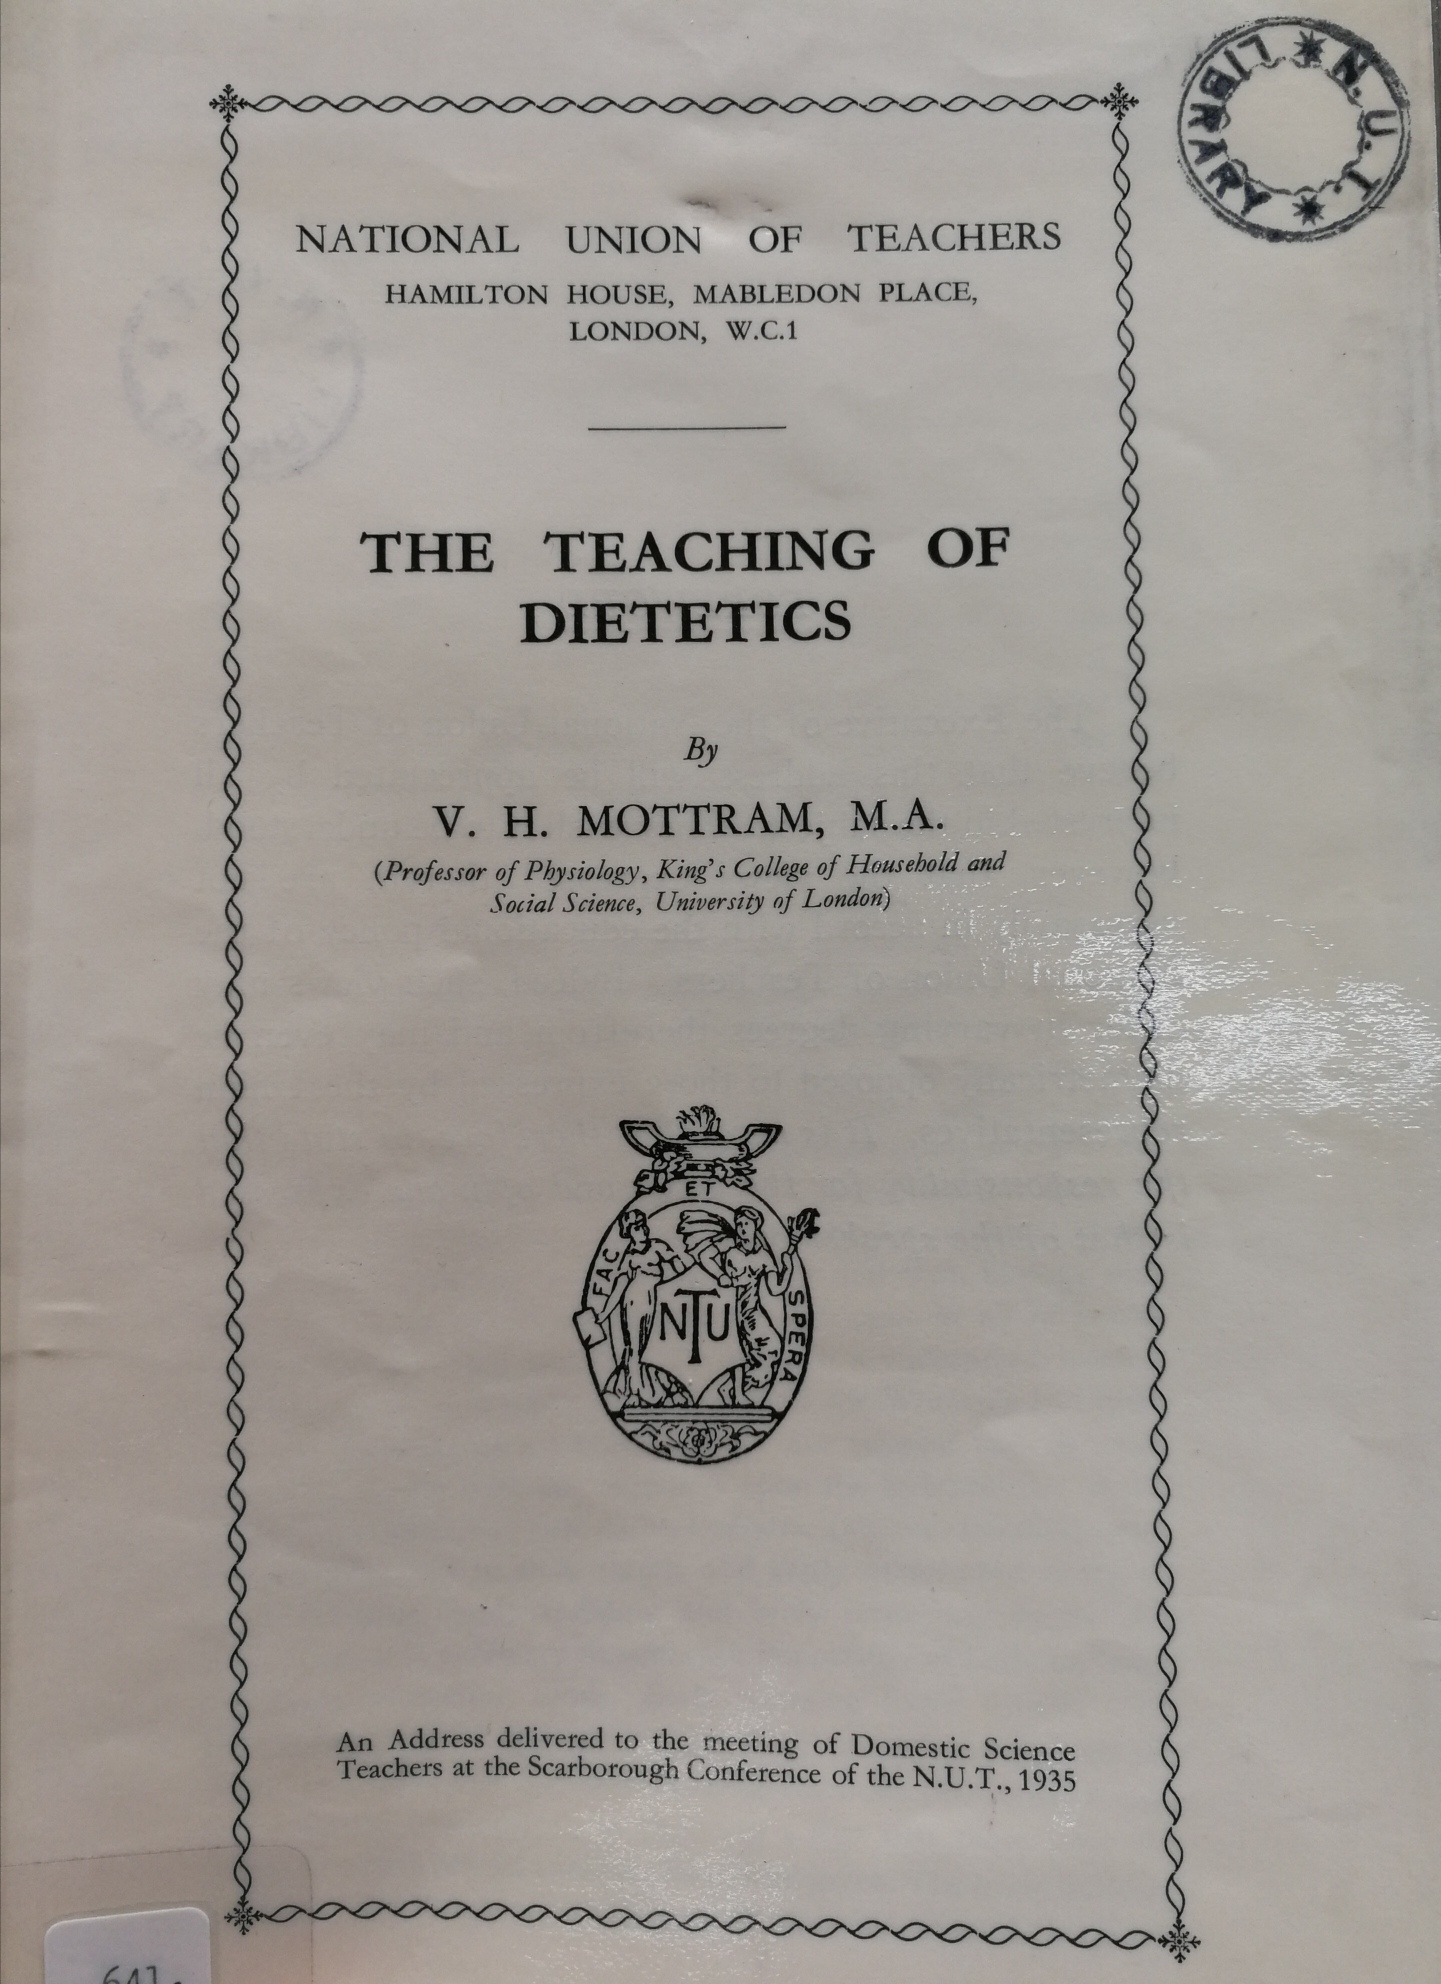 Image icon of publication on the teaching of dietetics